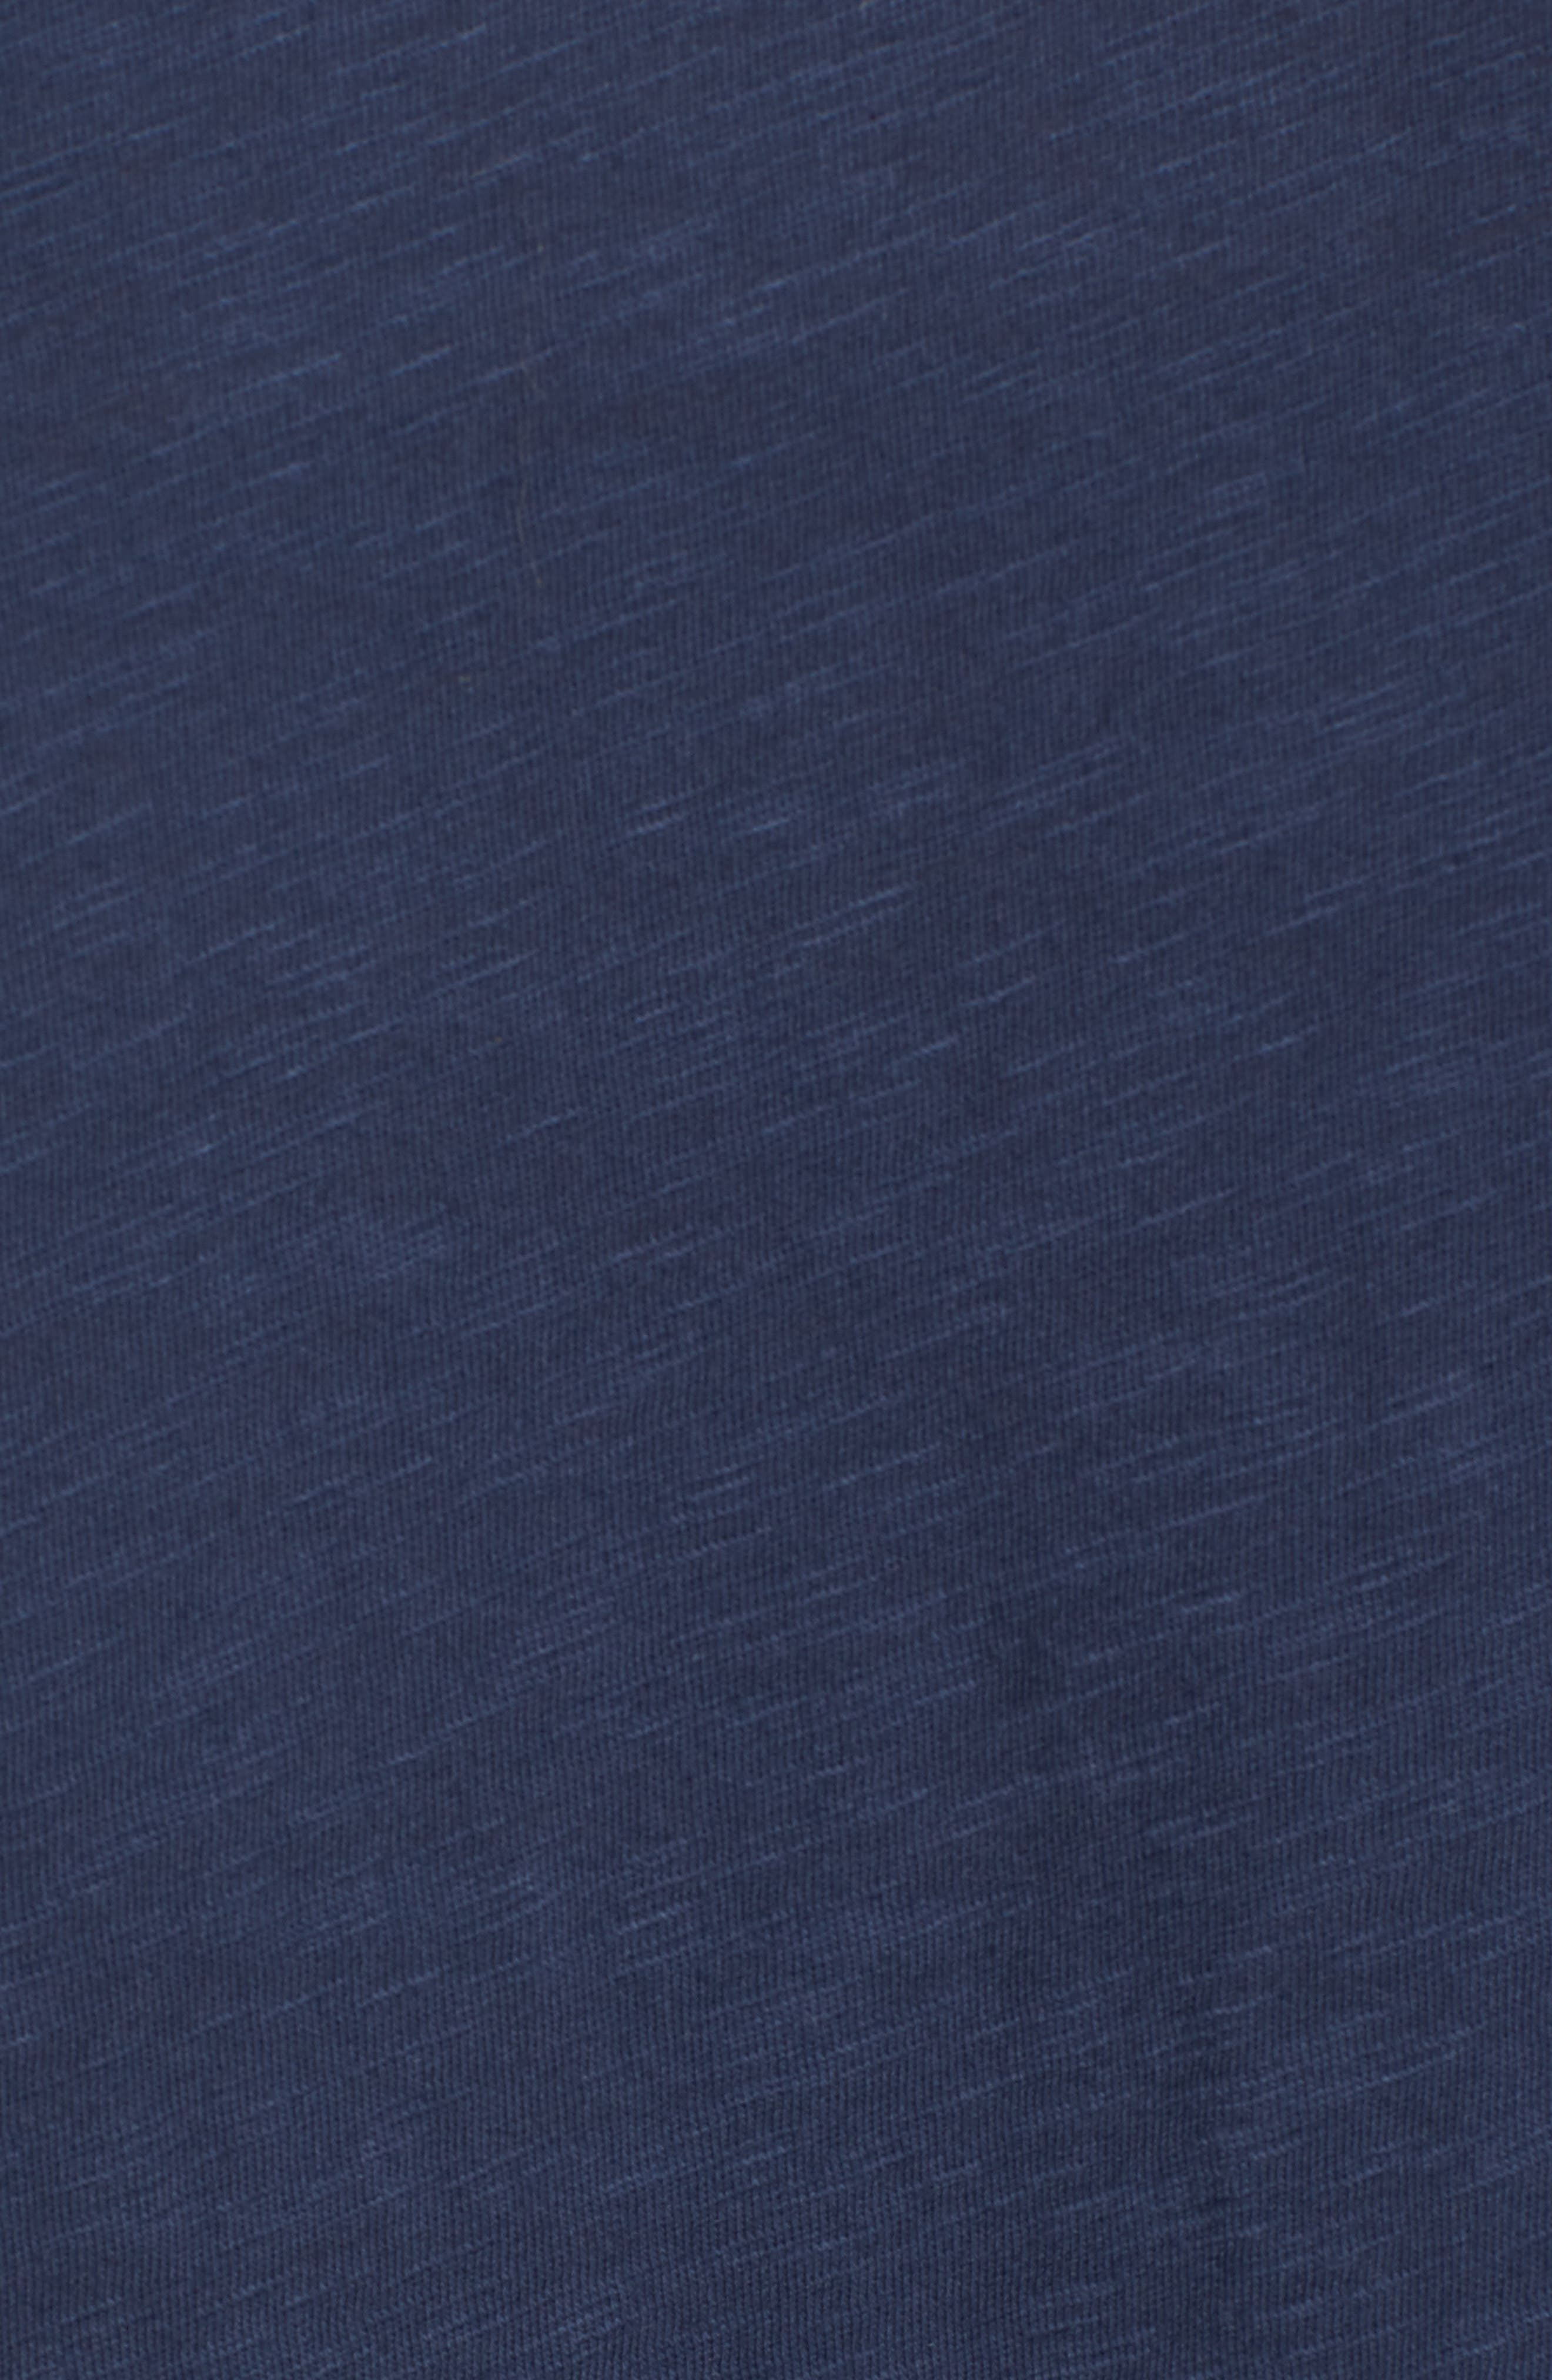 Lightweight Colorblock Cotton Tee,                             Alternate thumbnail 18, color,                             Navy- White